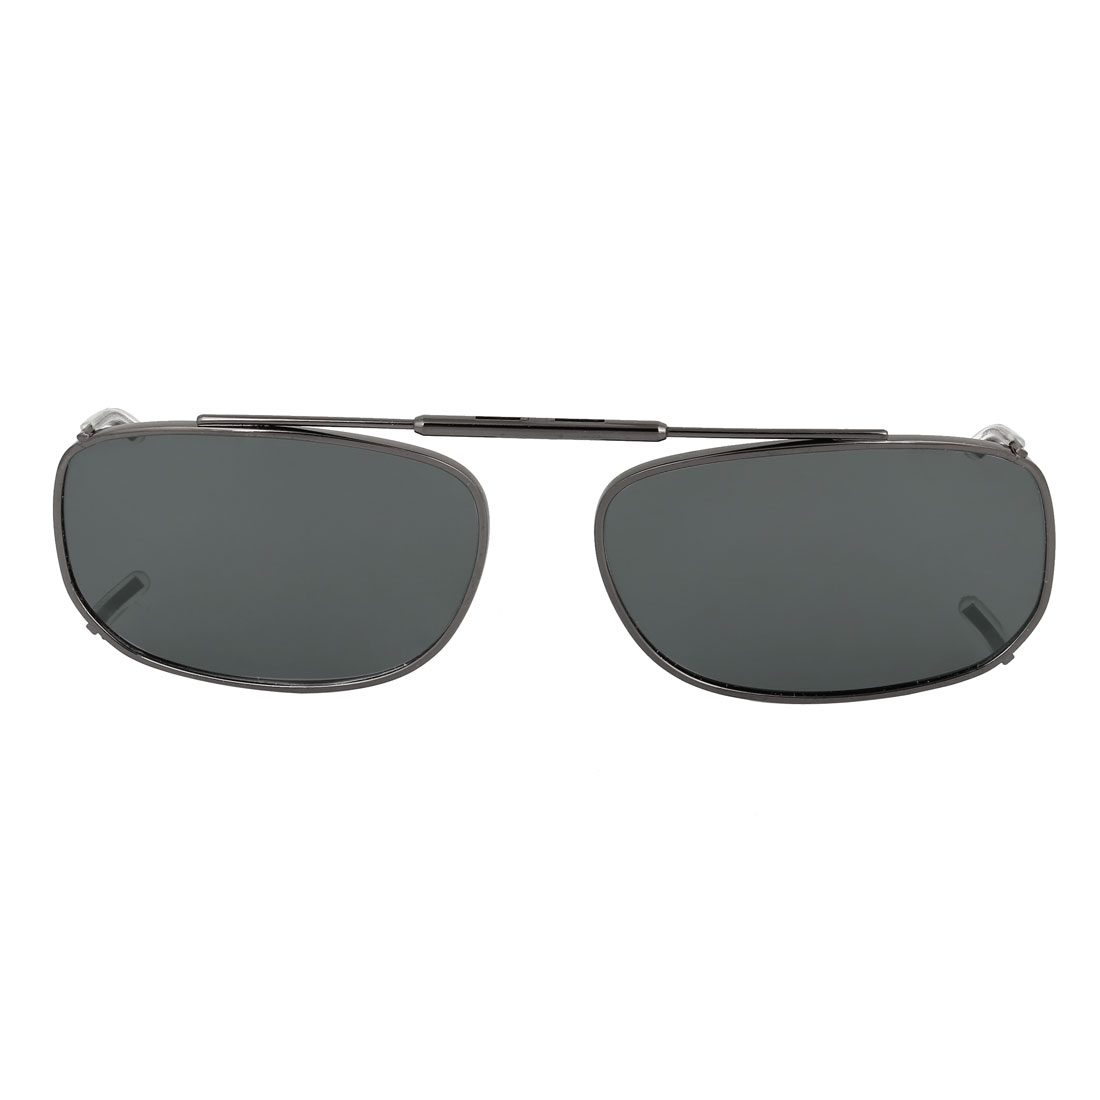 Unisex Outdoor Rimless Dark Gray Polarized Lens Clip on Sunglasses